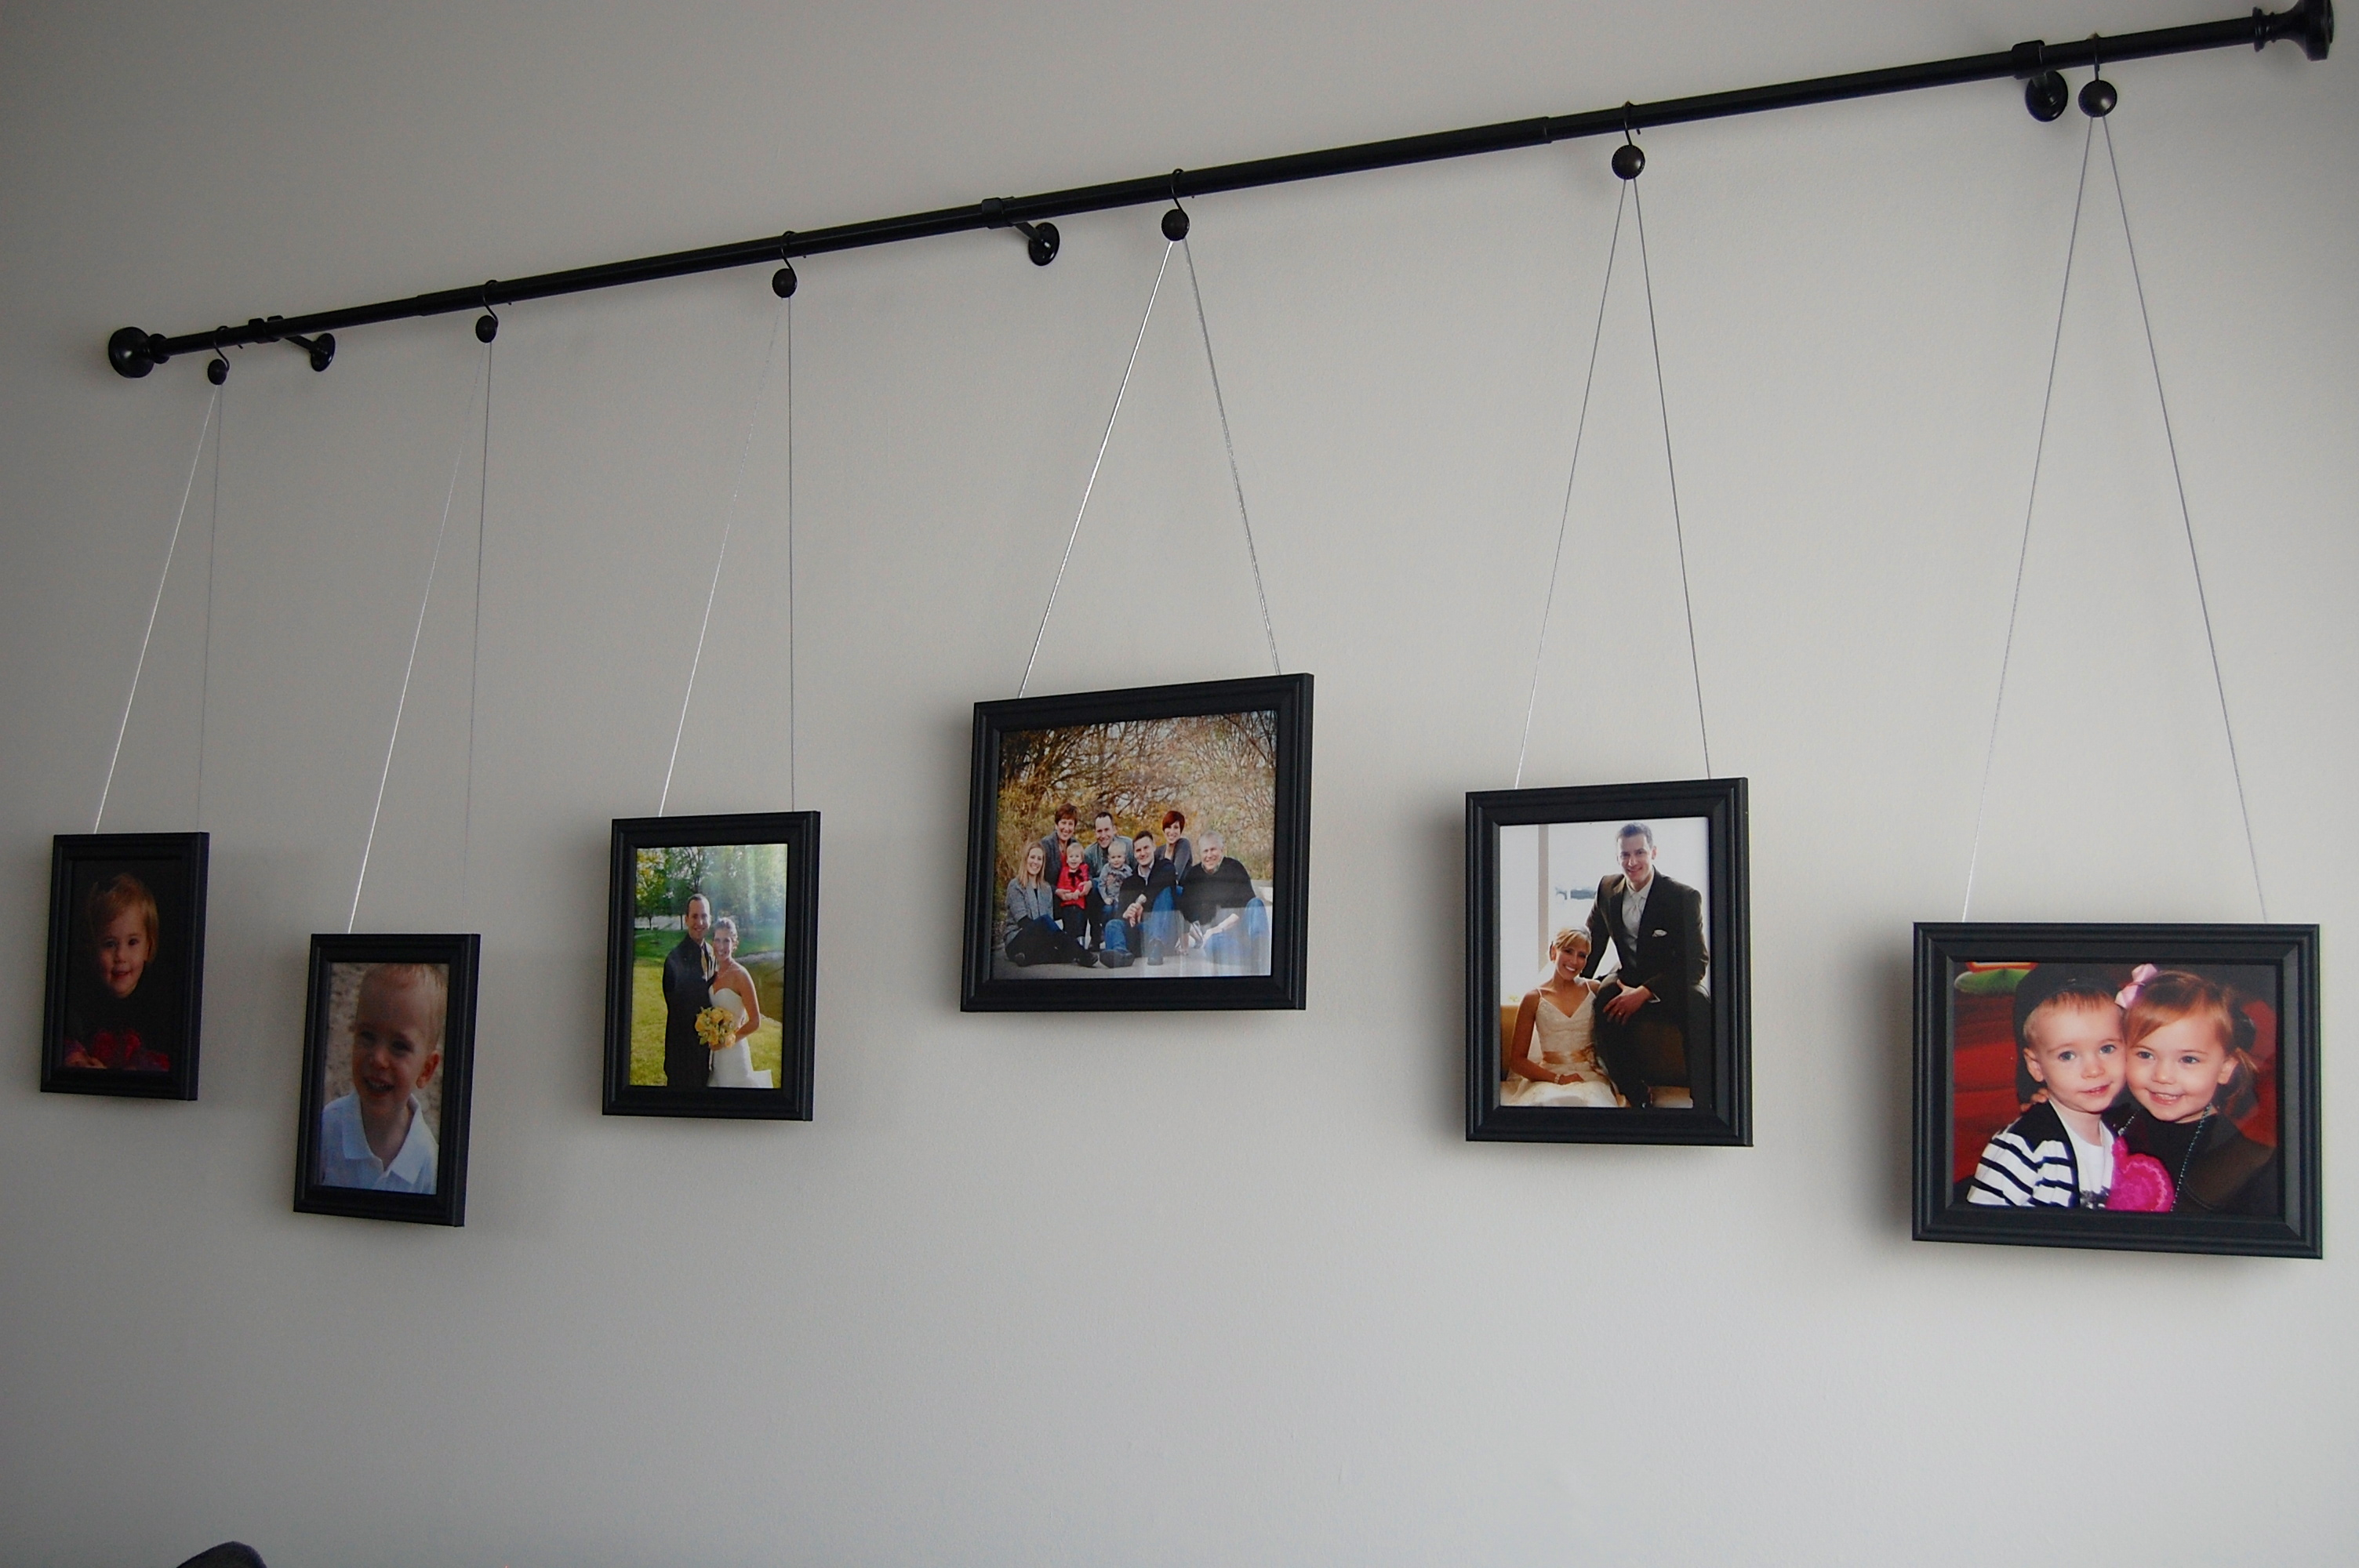 Diy curtain rod gallery wall for Hanging frames on walls